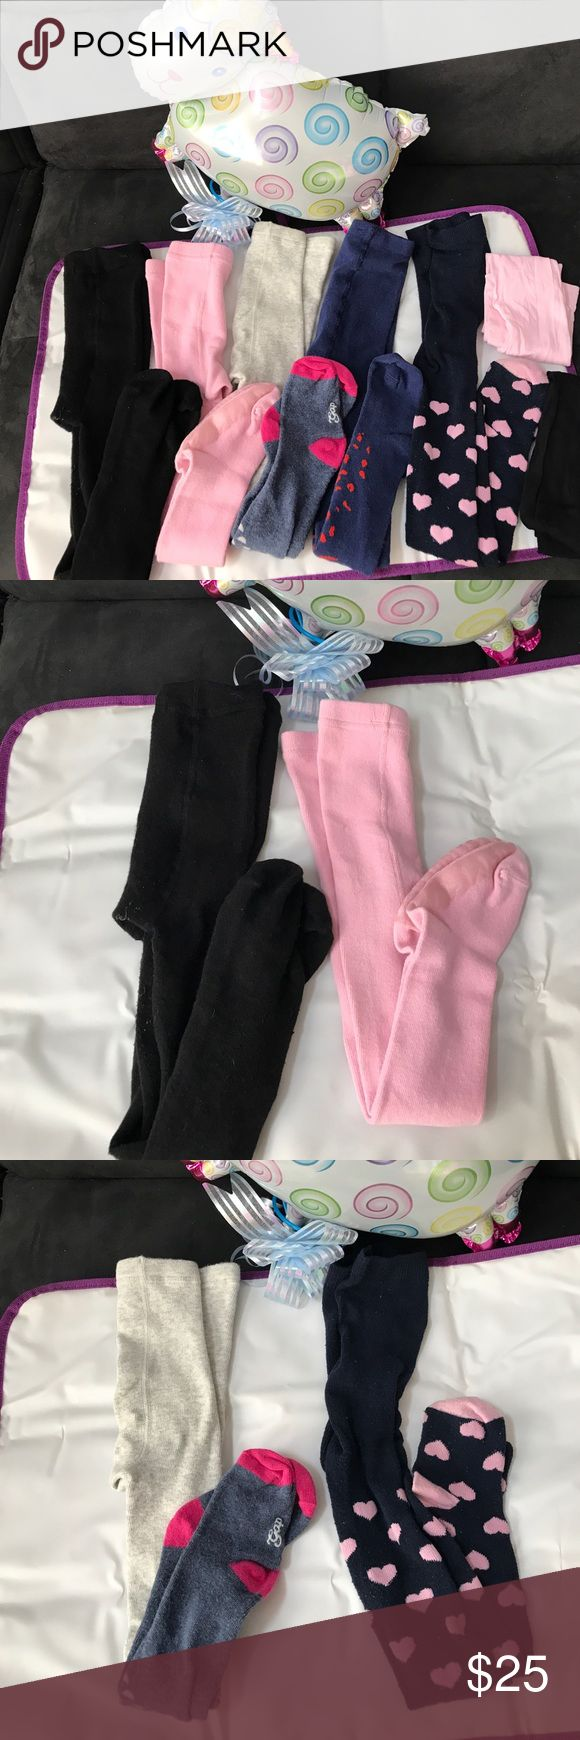 Toddler tights First two pairs (black and pink) from H&M, 3rd and 4th ones are from baby Gap, the 5th one is from Marc Jacob. Other two tights are free with purchase. Total original price cost $48, most of them are brand new never worn, only the heart shapes one worn few times. All washed! Marc Jacobs Accessories Socks & Tights